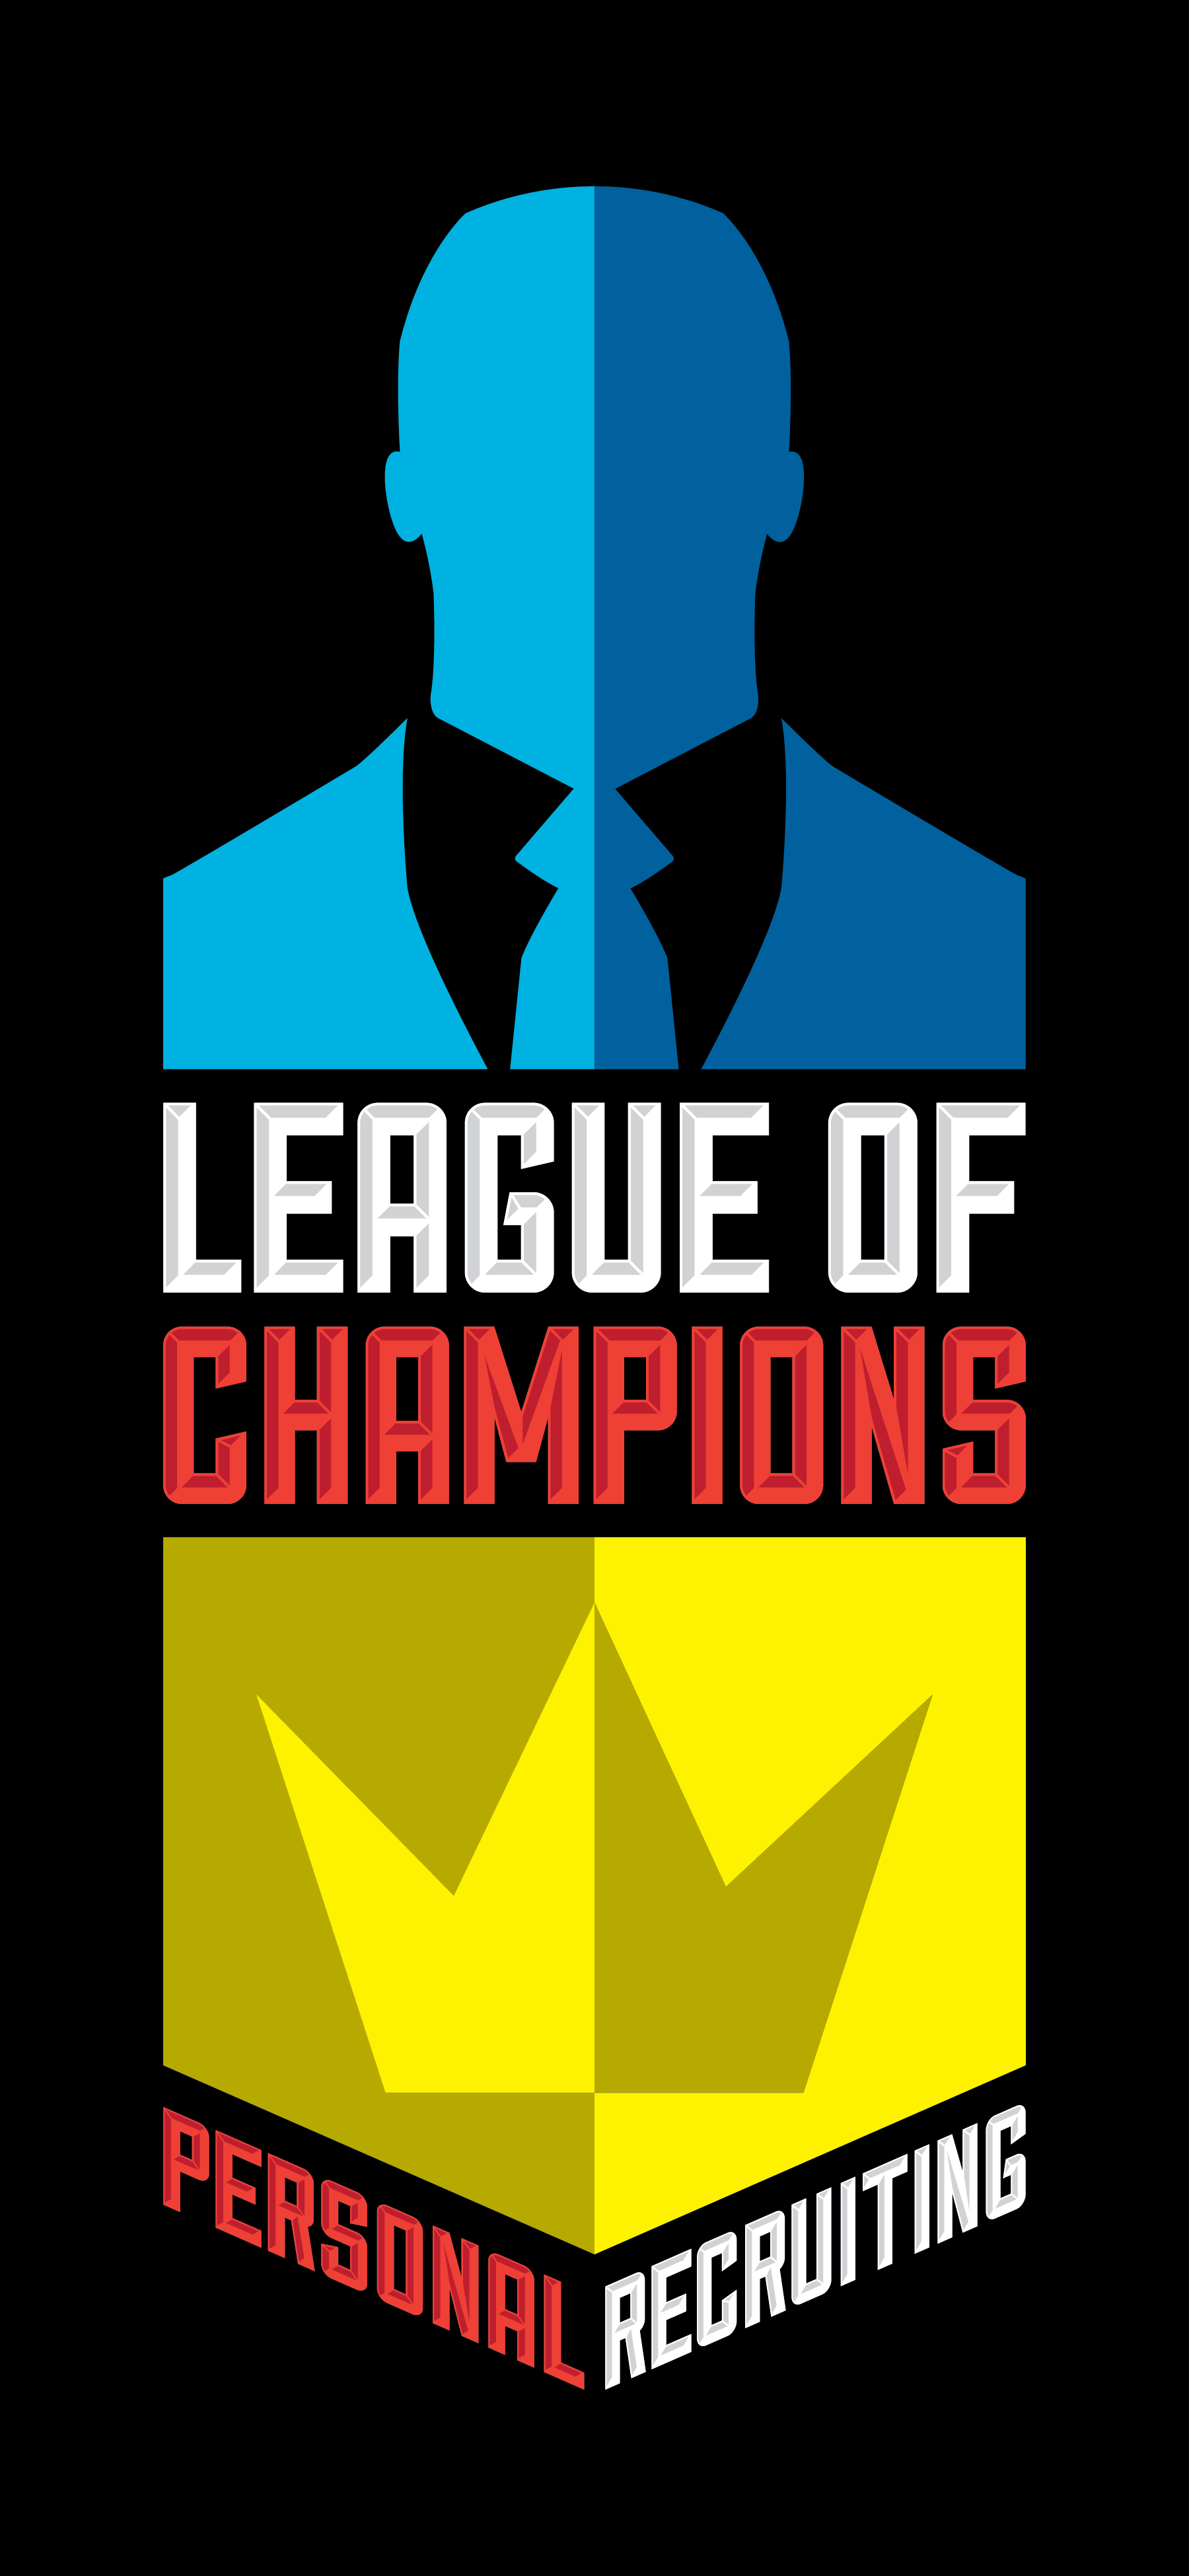 Jonathan mcginnis league of champions logo the june 2015 issue of spotlight is based its design on the league of champions logo altavistaventures Gallery